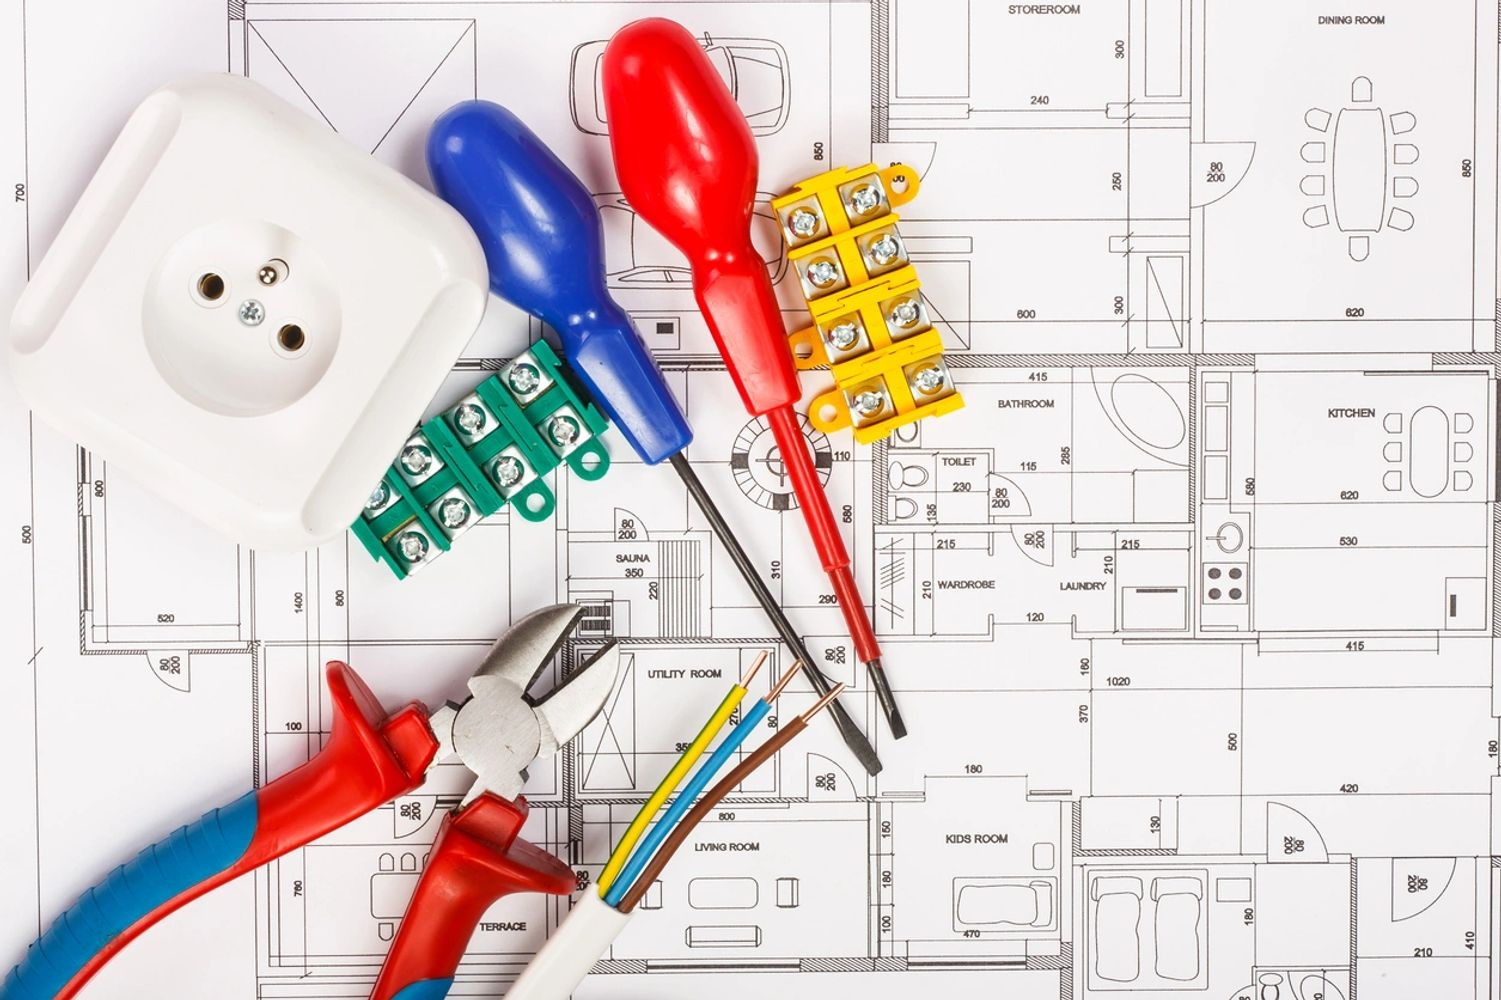 Aberdeen pat test services,pat test service in Aberdeen,electrician in Aberdeen,Aberdeen electrician